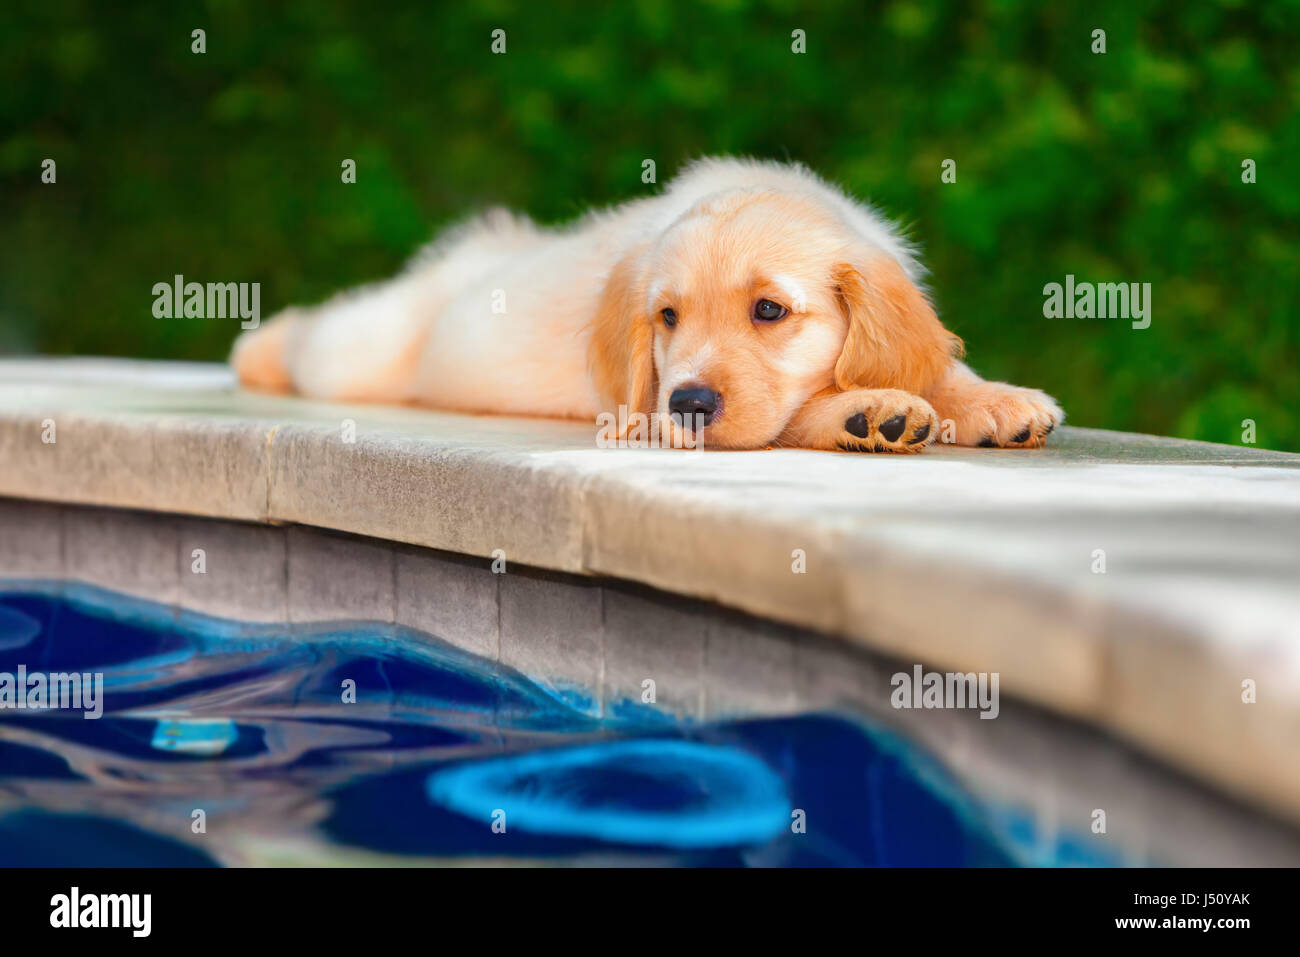 Funny Photo Of Lazy Little Golden Retriever Labrador Puppy Lying